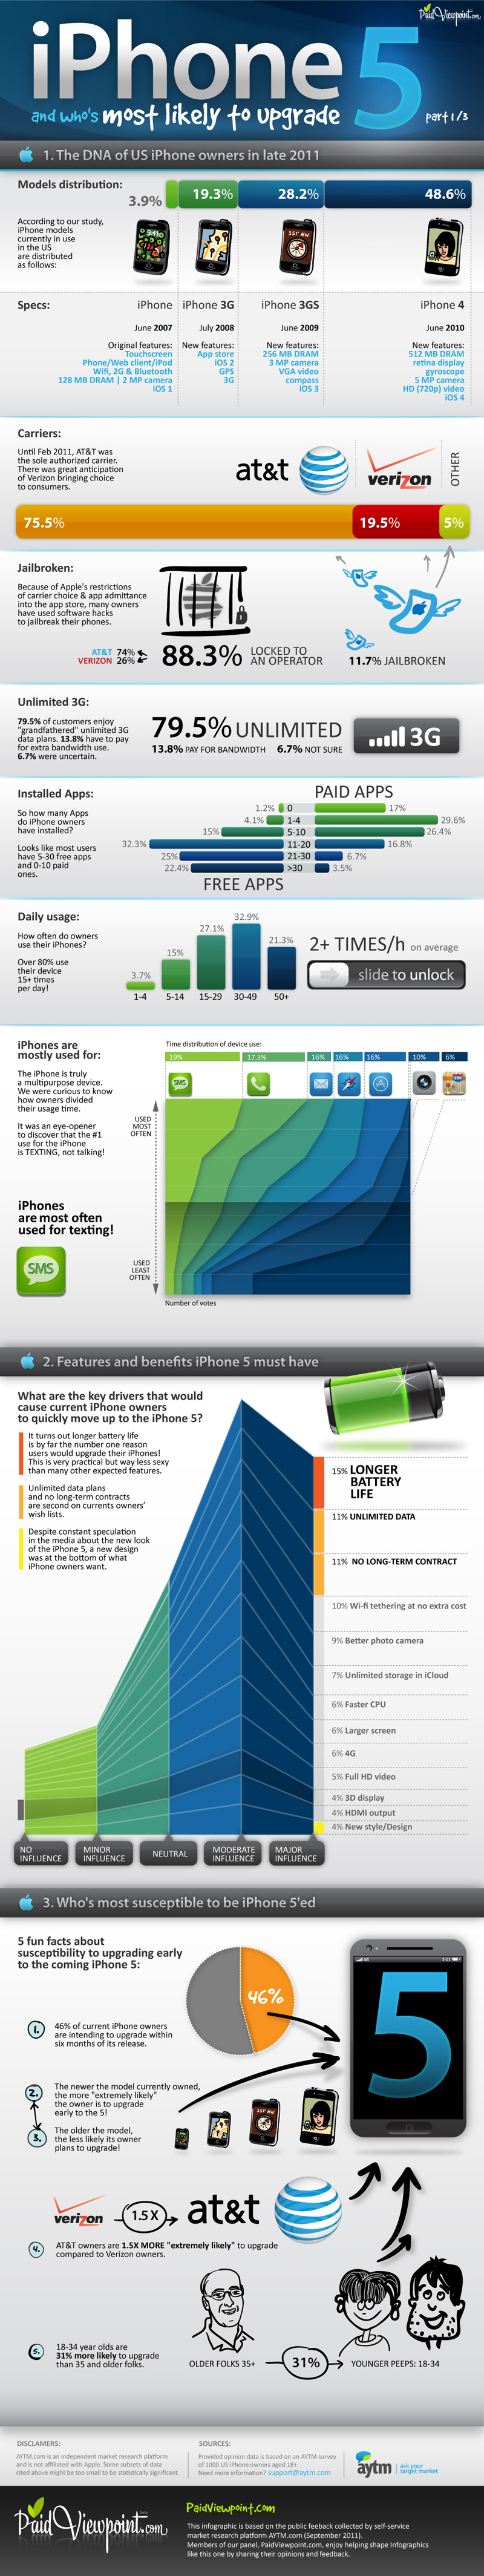 Will You Upgrade To The iPhone 5? [INFOGRAPHIC]